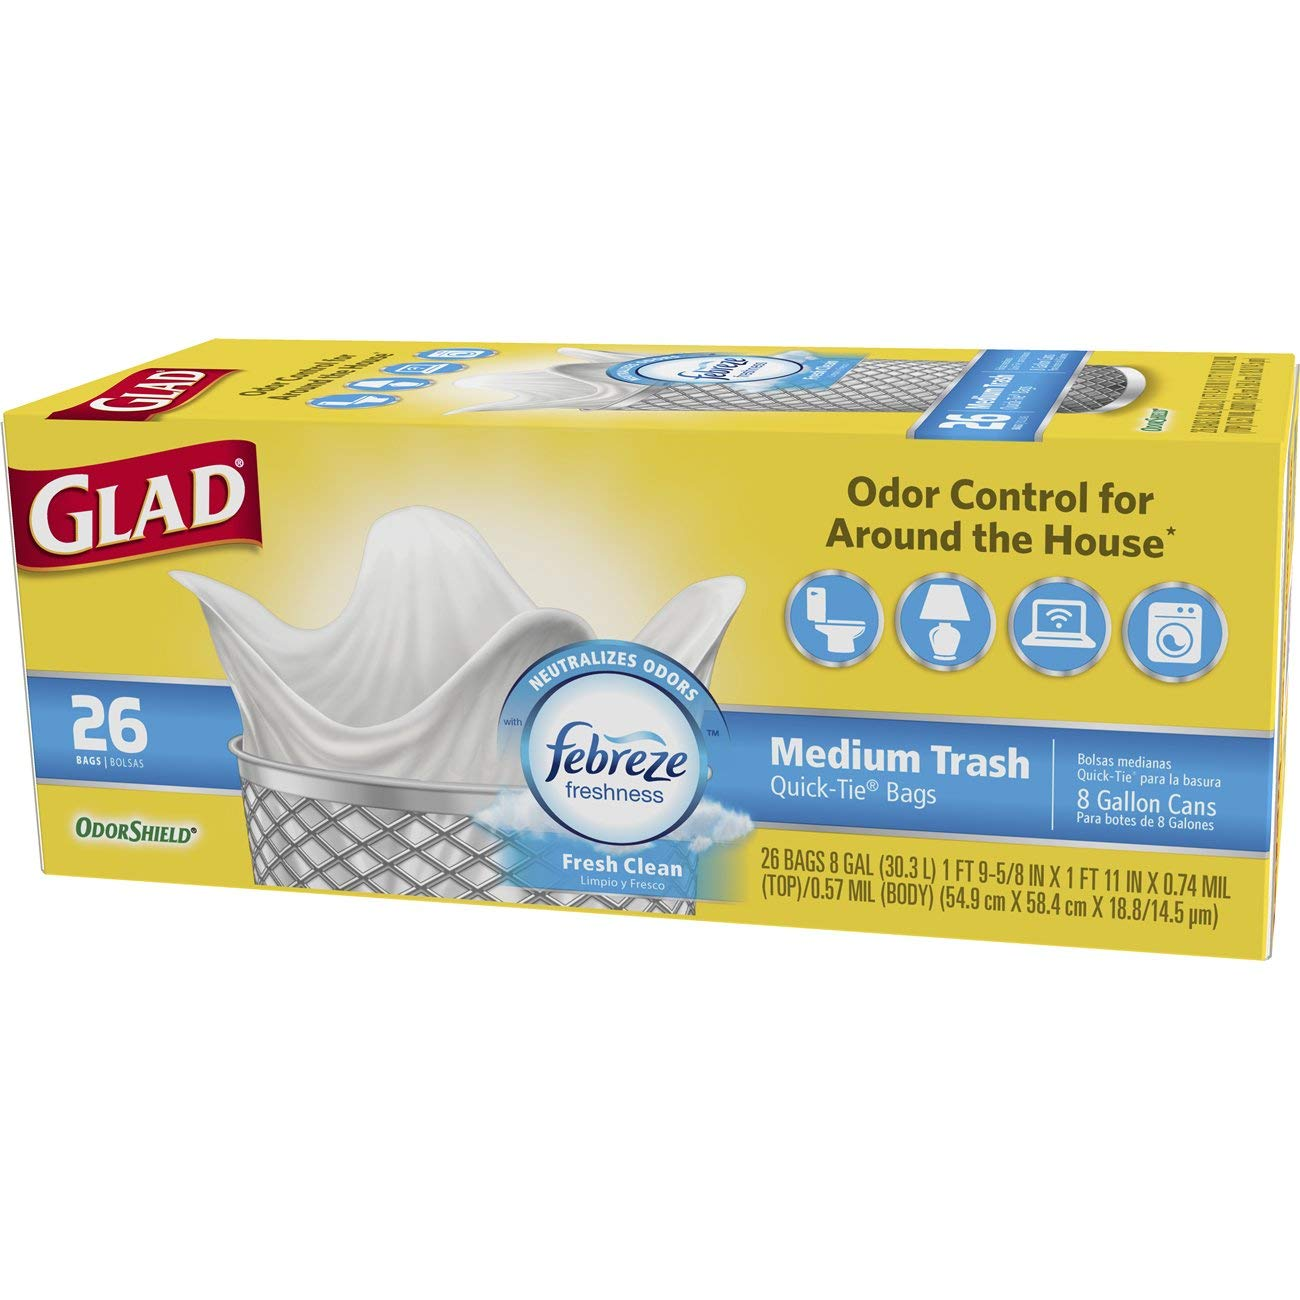 Glad Medium Quick-Tie Trash Bags - OdorShield 8 Gallon White Trash Bag, Febreze Fresh Clean - 26 Count Each (Pack of 6)